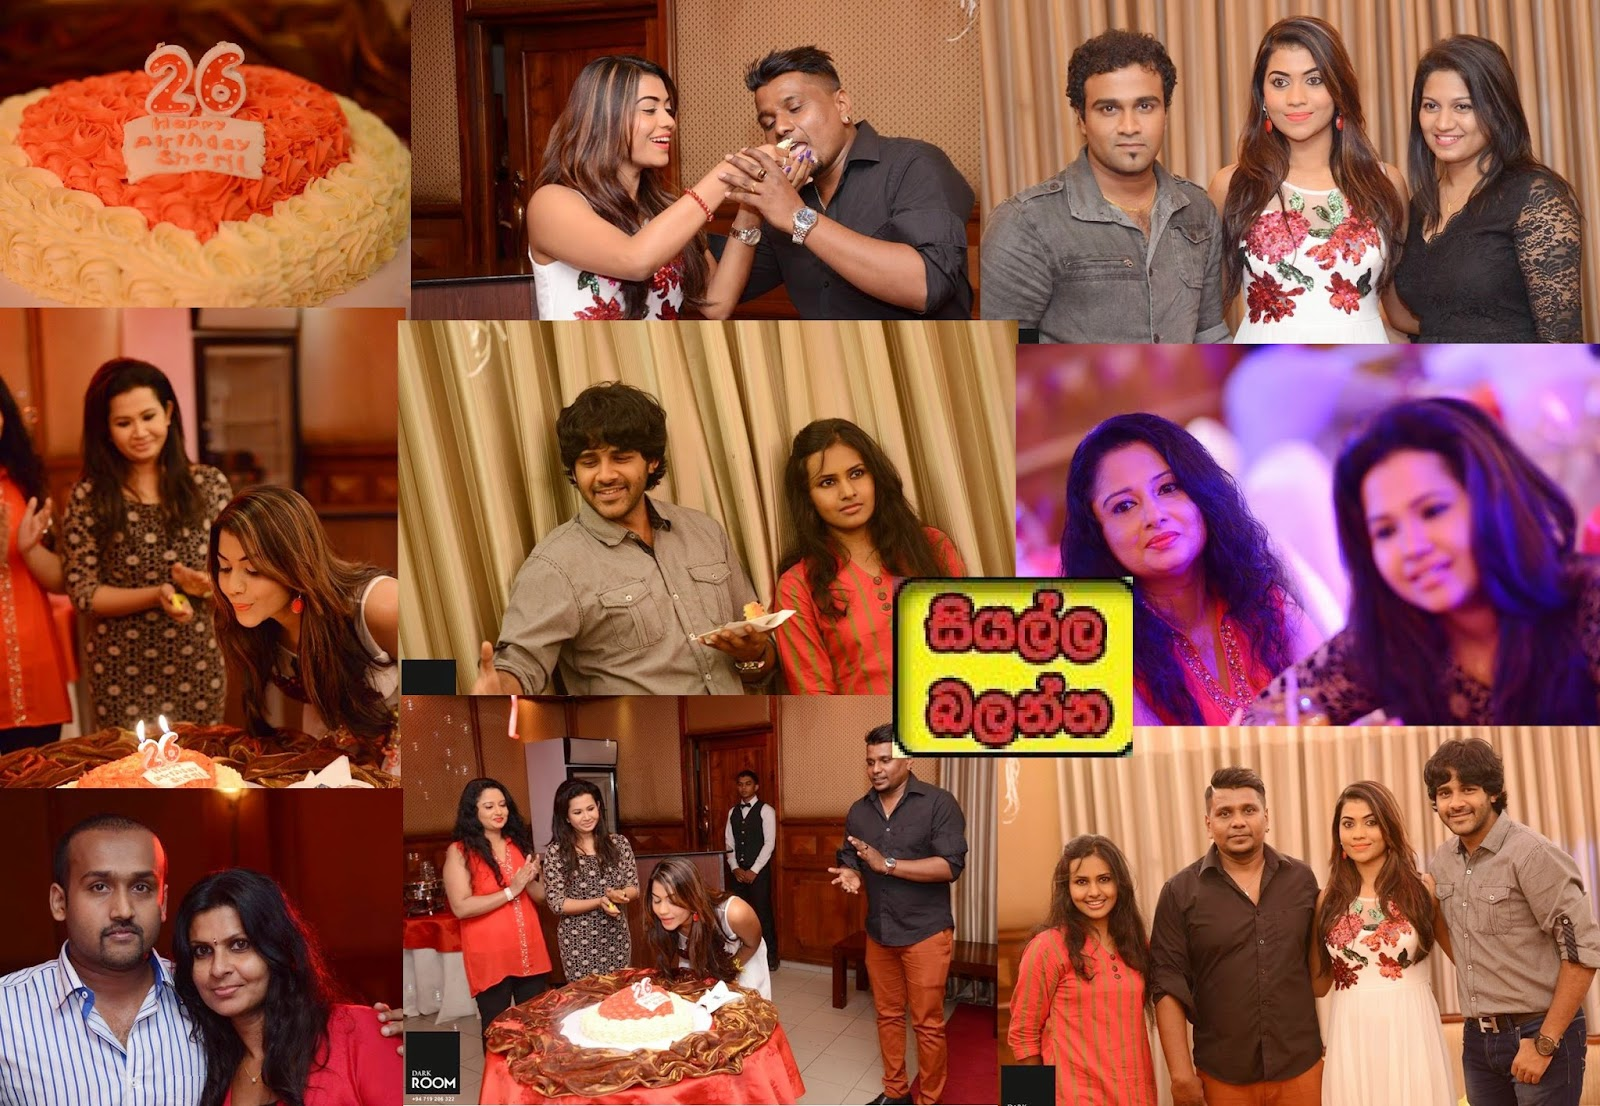 http://picture.gossiplankahotnews.com/2015/04/sheril-deckers-surprise-birthday-party.html